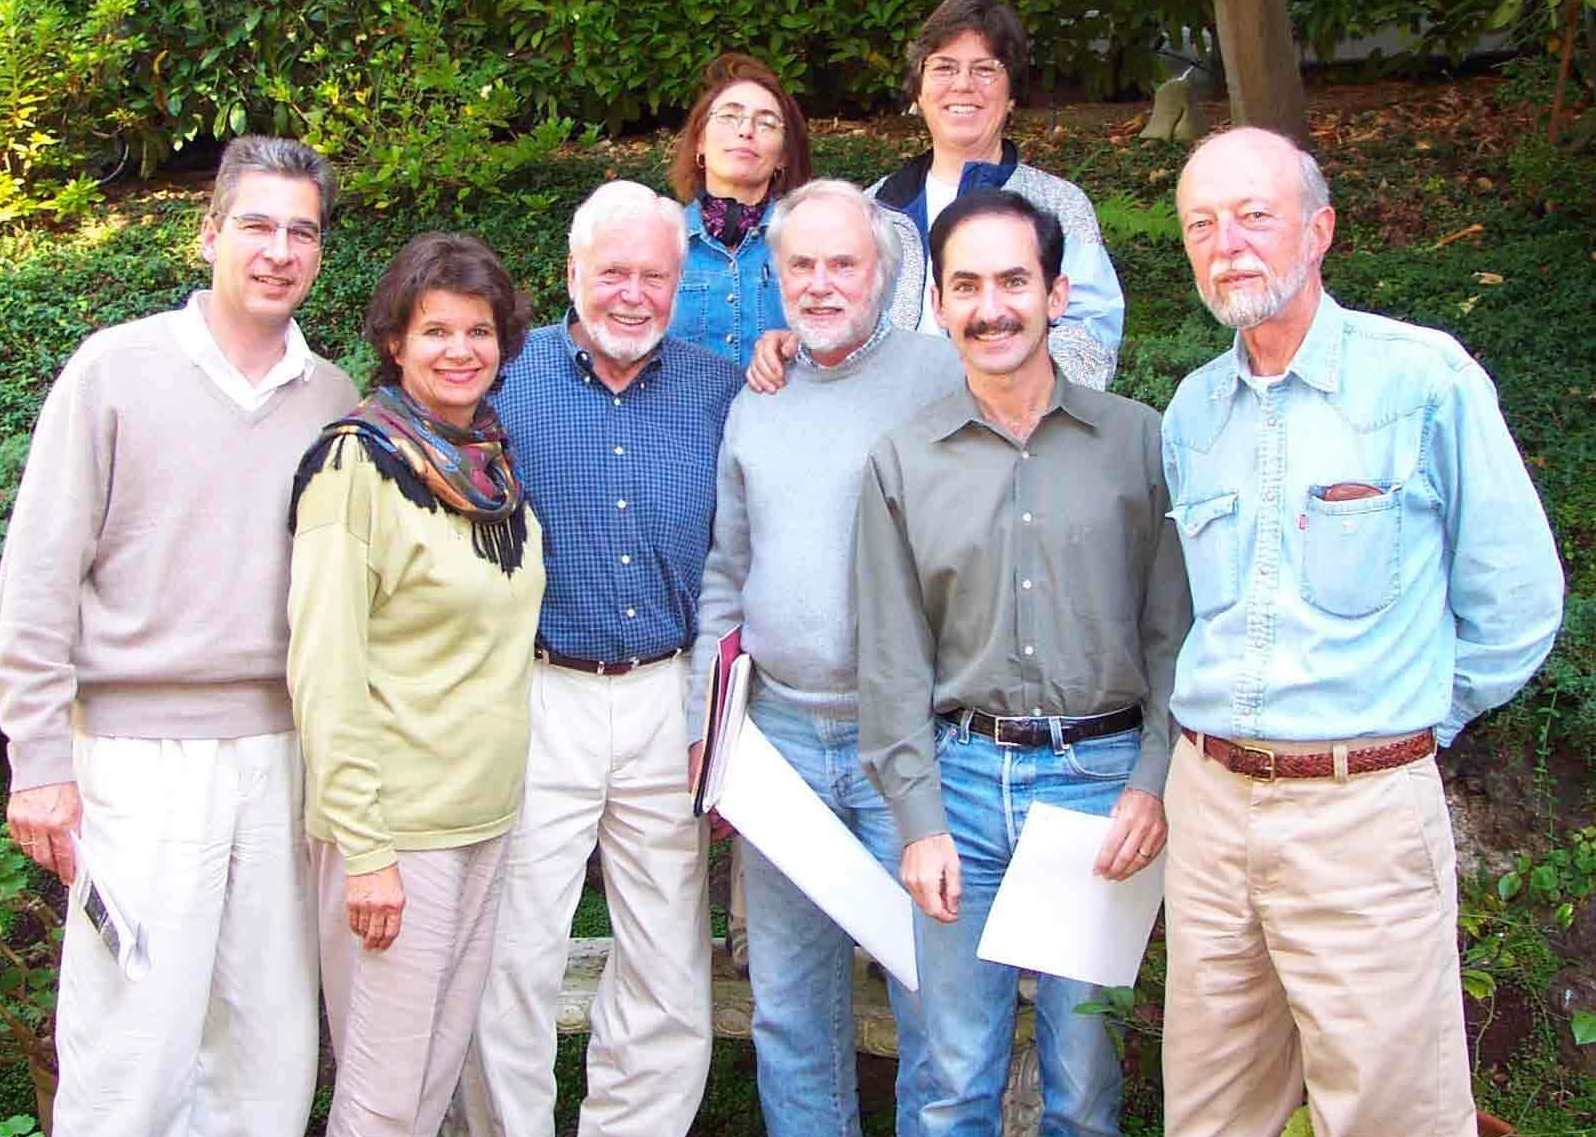 Some of the original 2001 board members,l. to r., Klaus Burmeister, Nancy Mueller, Tim Wallace, Tamia Marg, Bill McClung, Joan Collignon, Barry Miller and Joe Engbeck. (Not pictured are Marion Brenner, Betty Croly,Marilyn Goldhaber and Ronnie Rogers.)